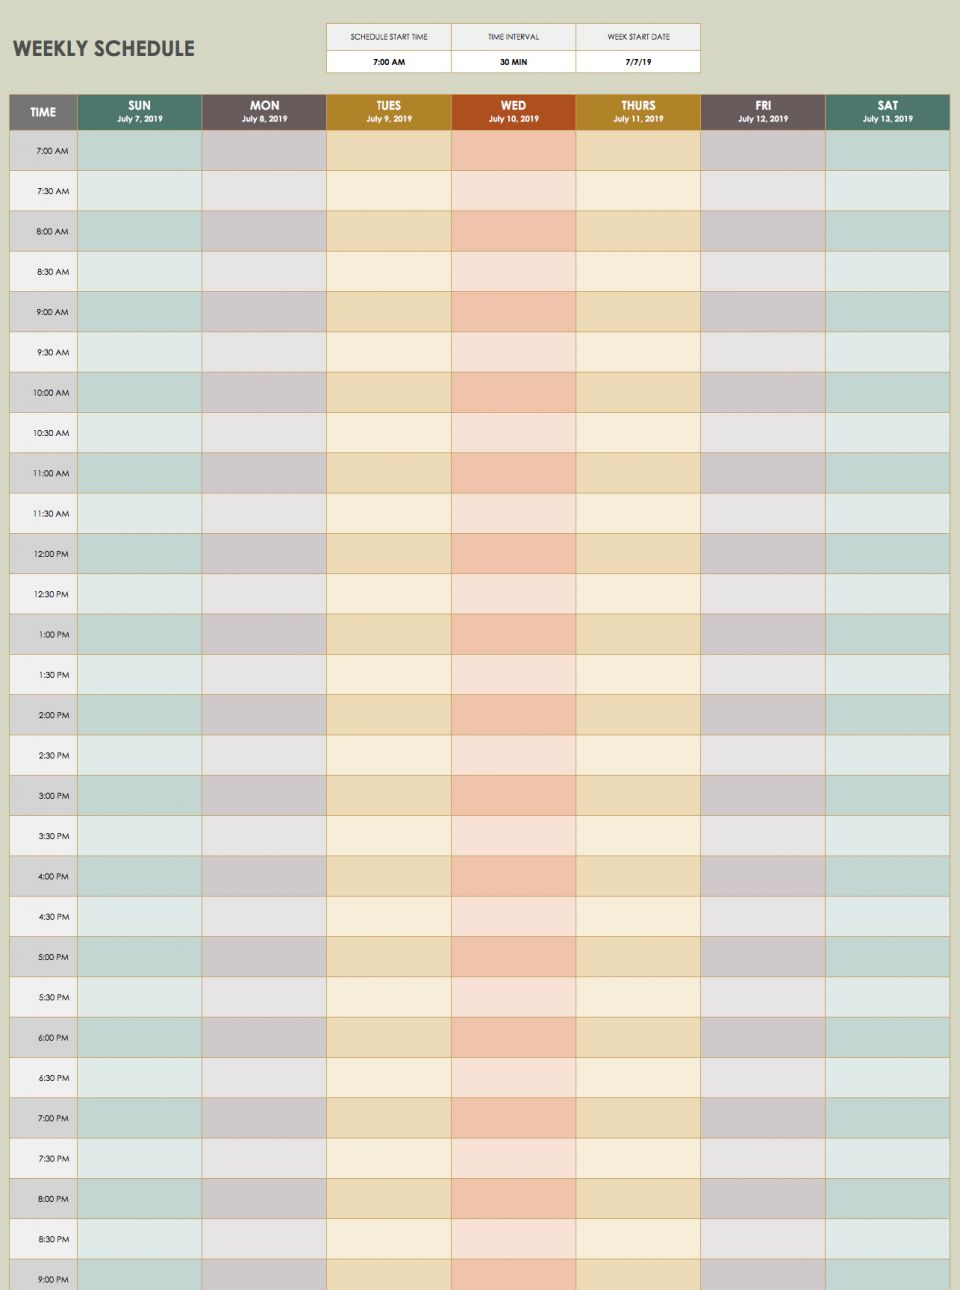 On this time management schedule template you can set the time interval and start date to suit your needs. Time intervals range from 10 to 120 minutes ...